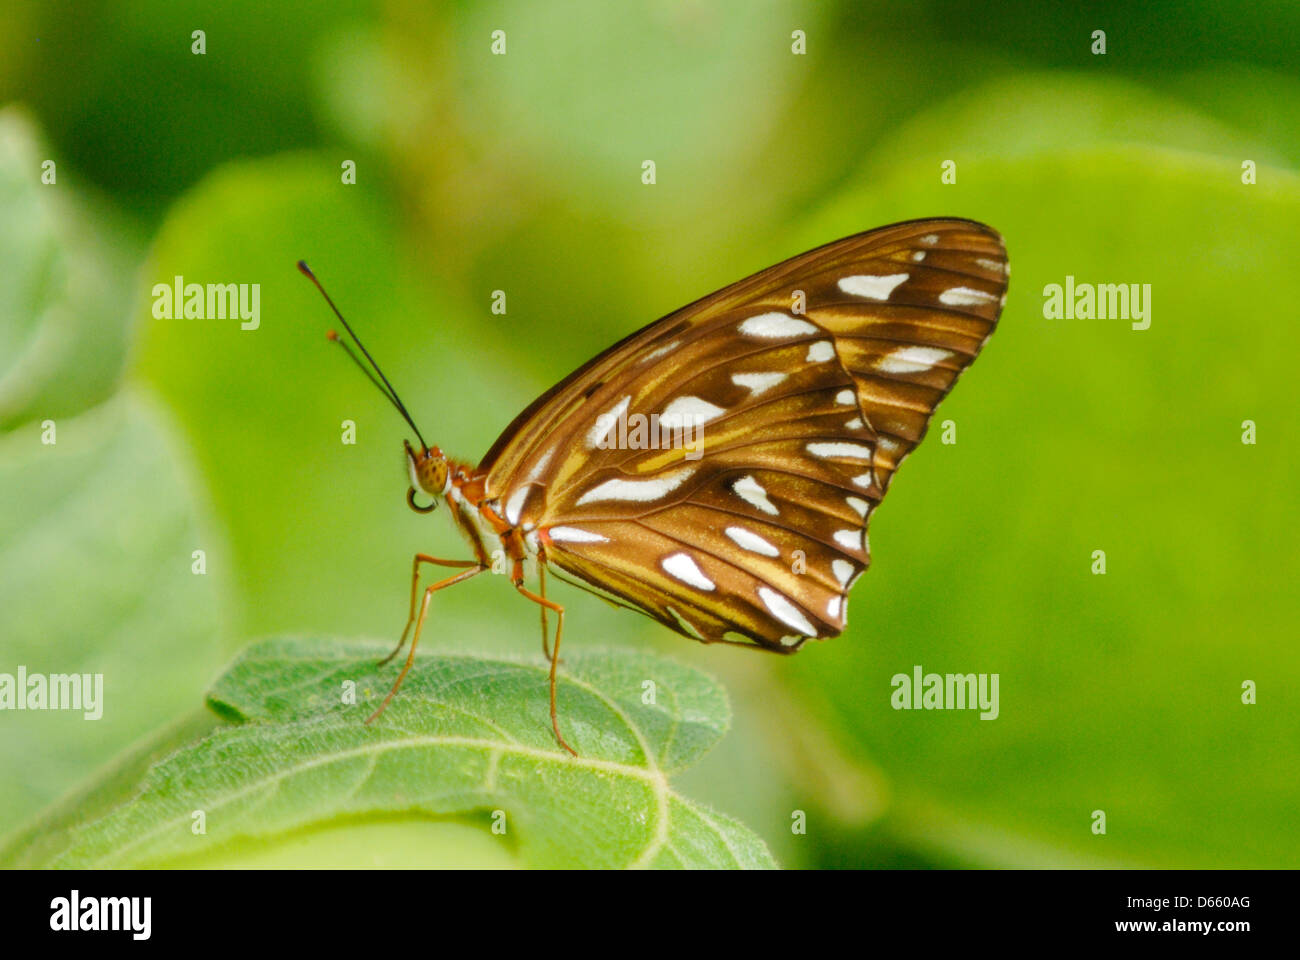 Gulf Fritillary (Agraulis vanilla) in the rainforest of the Osa Peninsua, Costa Rica. July 2012. - Stock Image